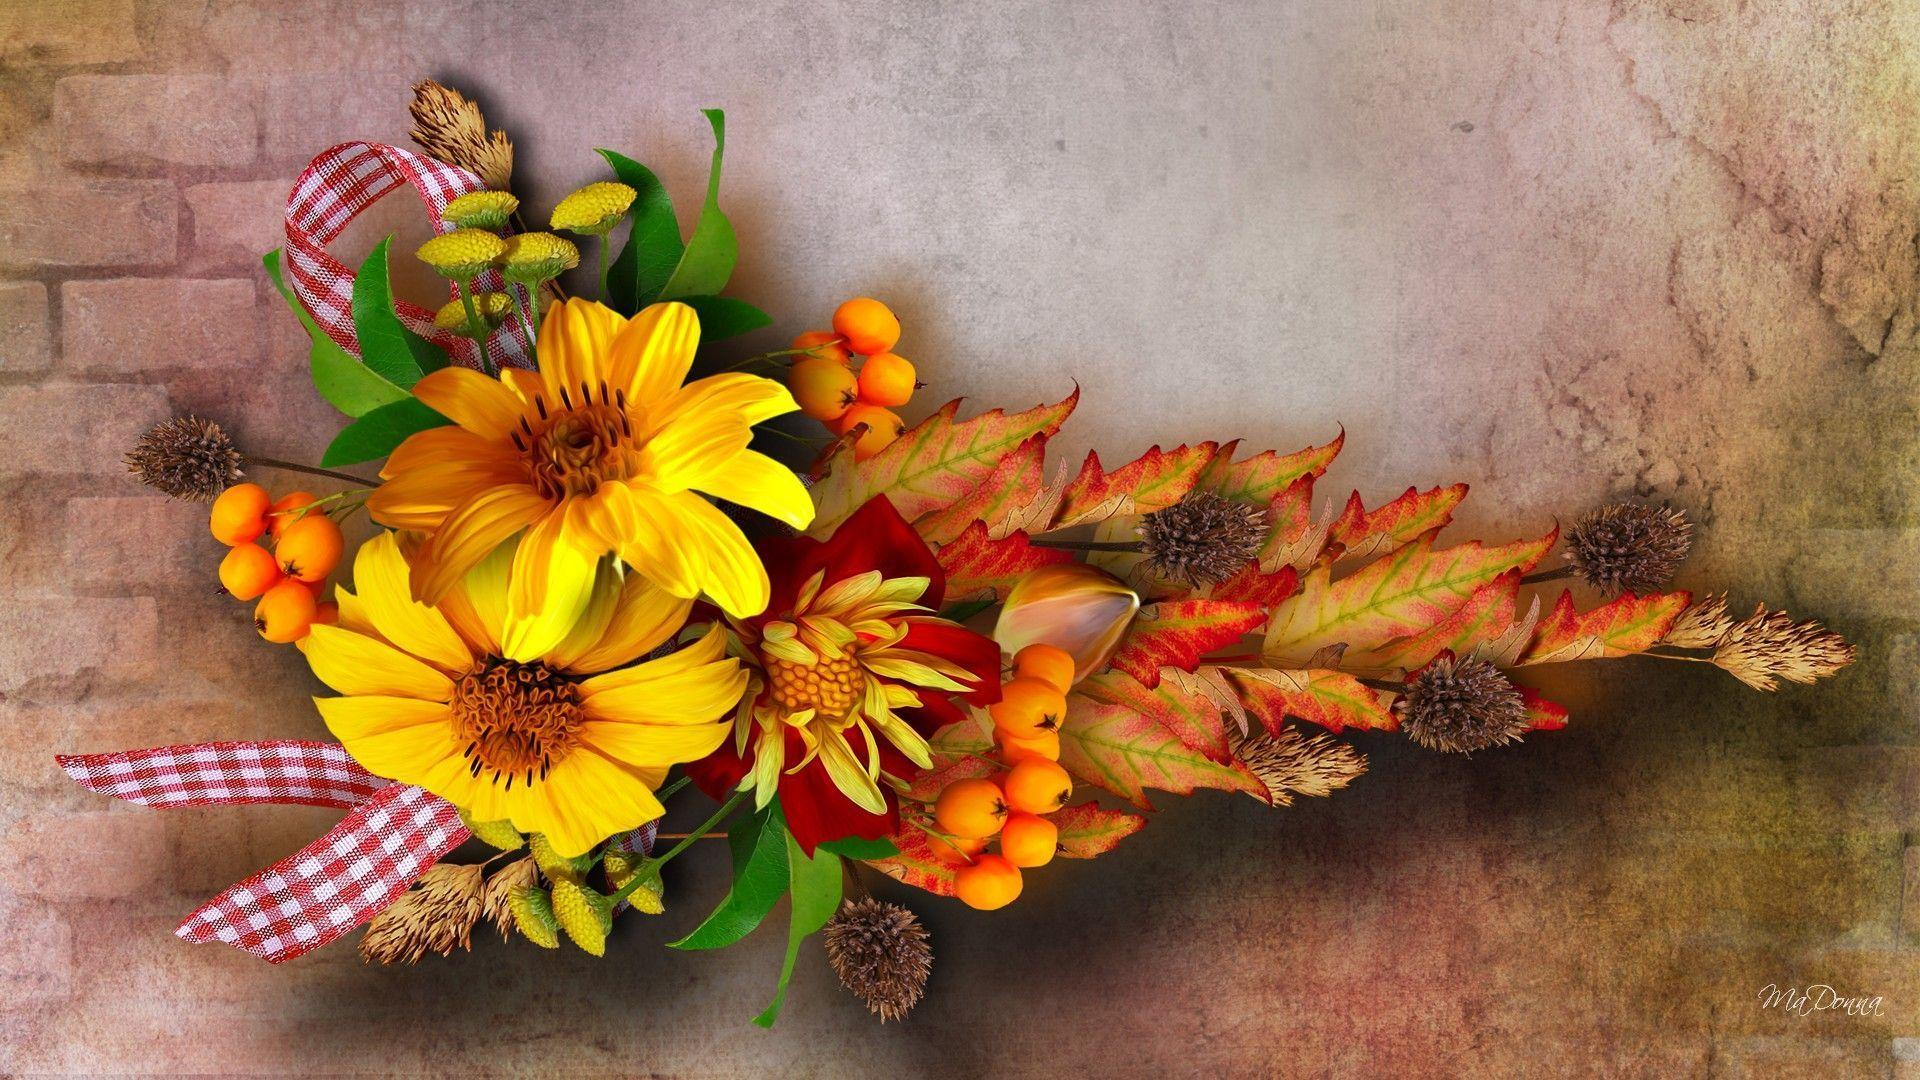 fall flowers wallpaper by - photo #3